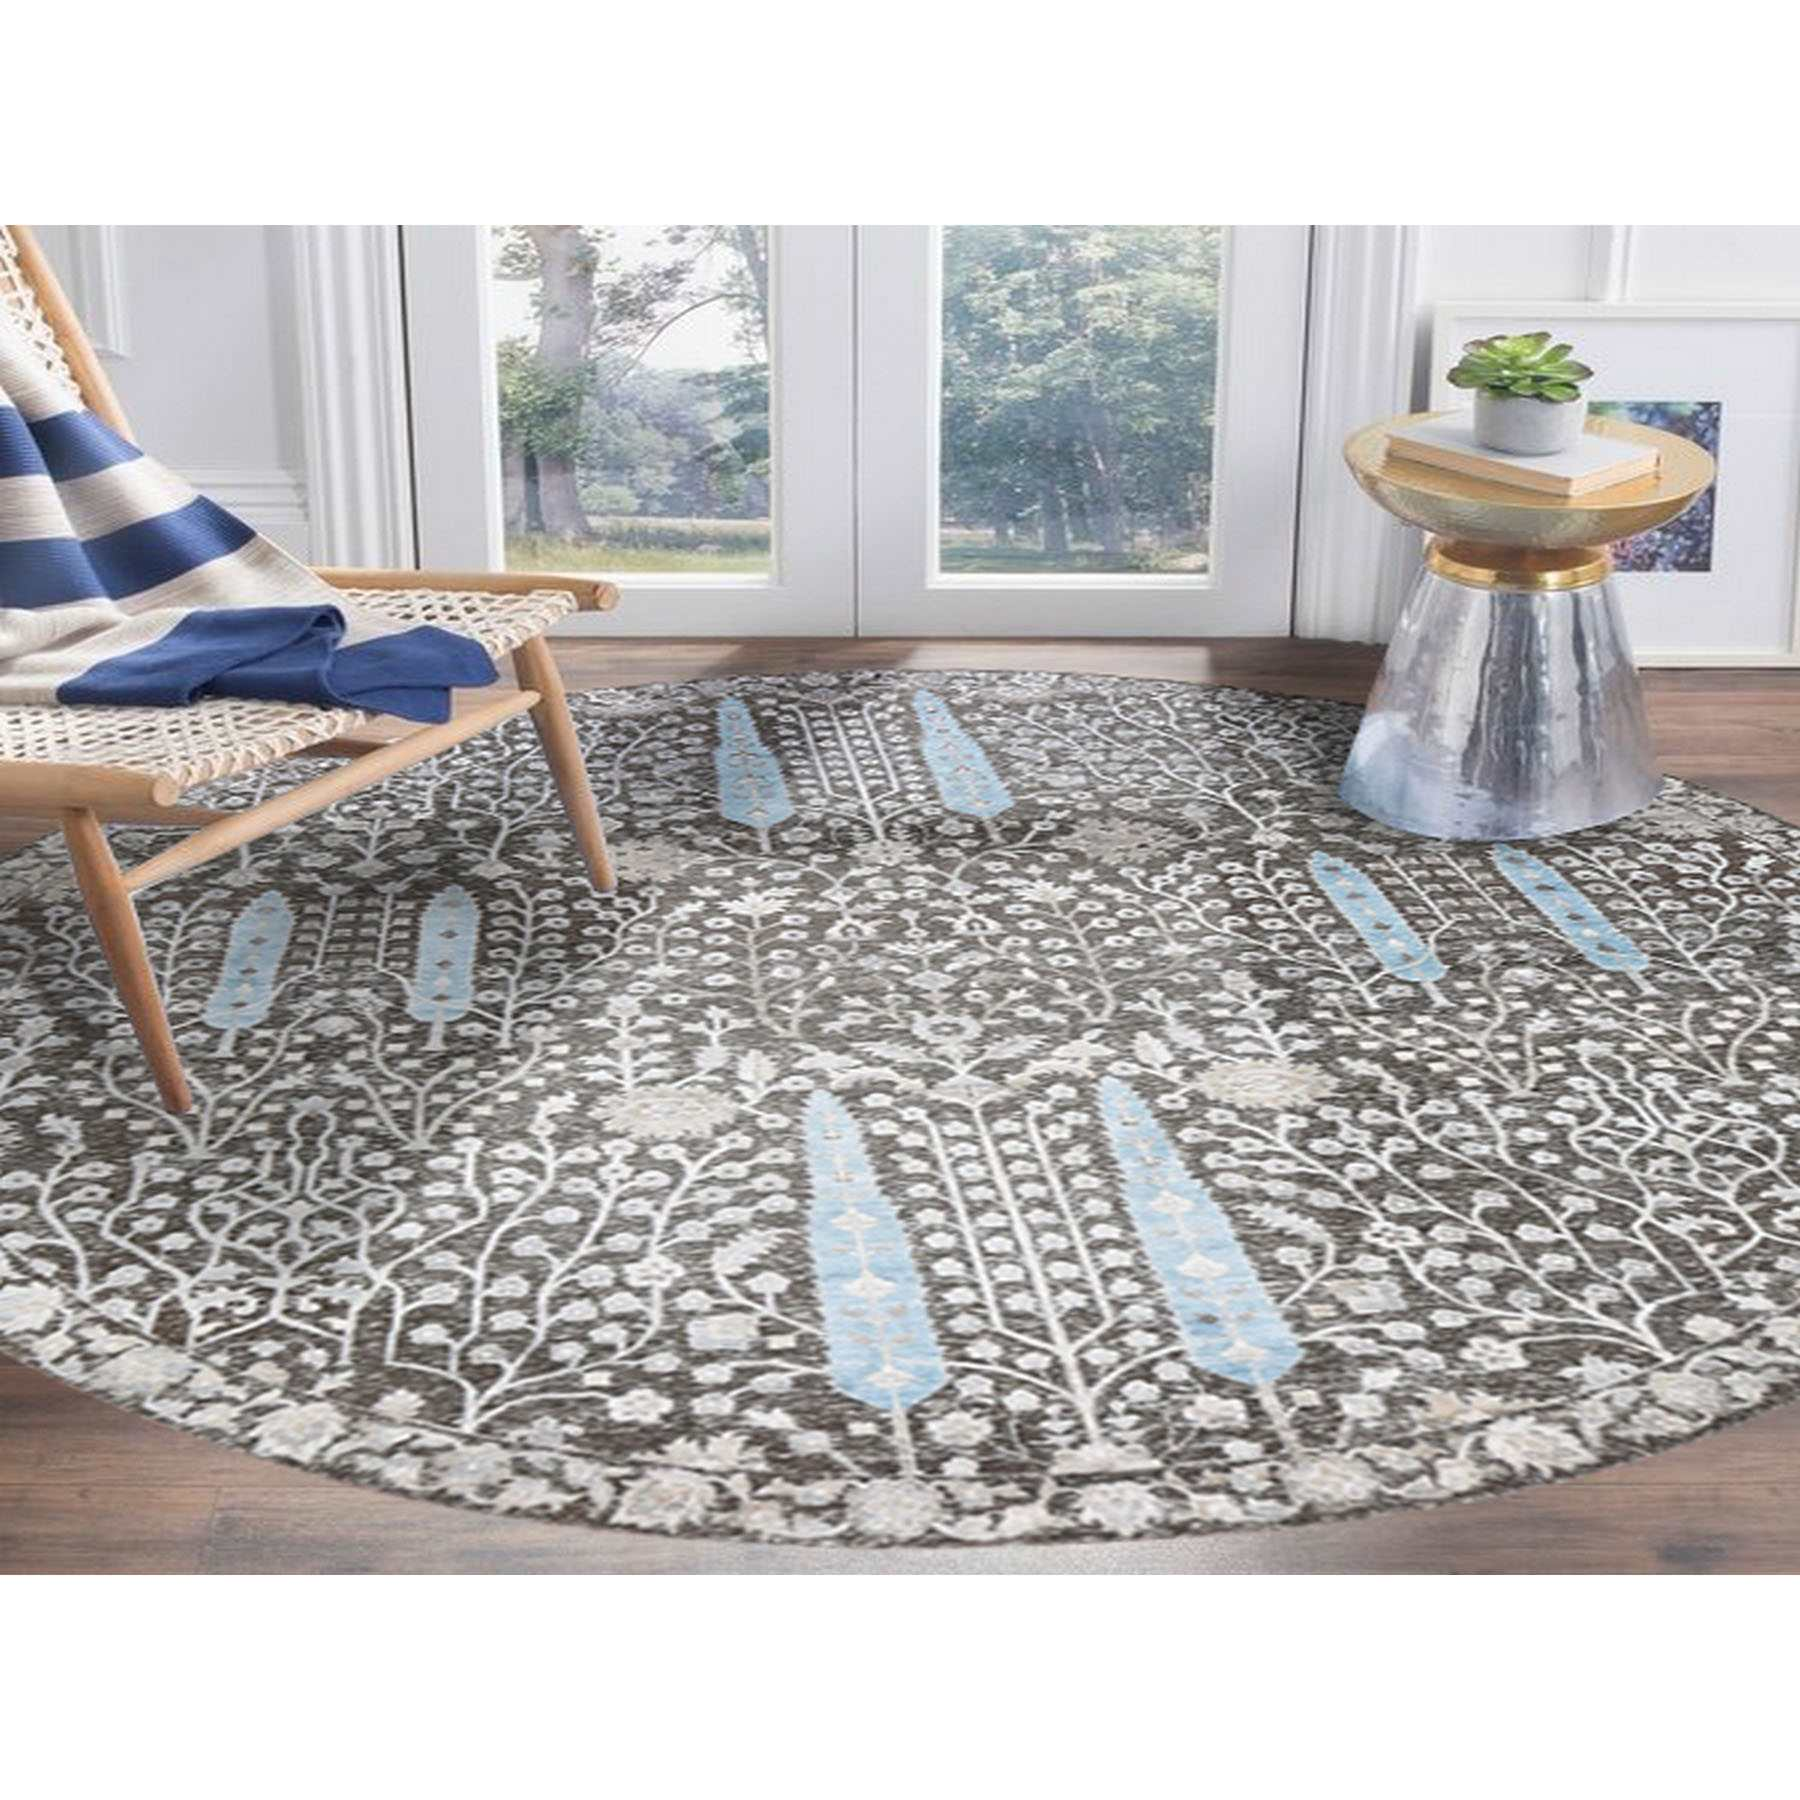 Transitional-Hand-Knotted-Rug-244655